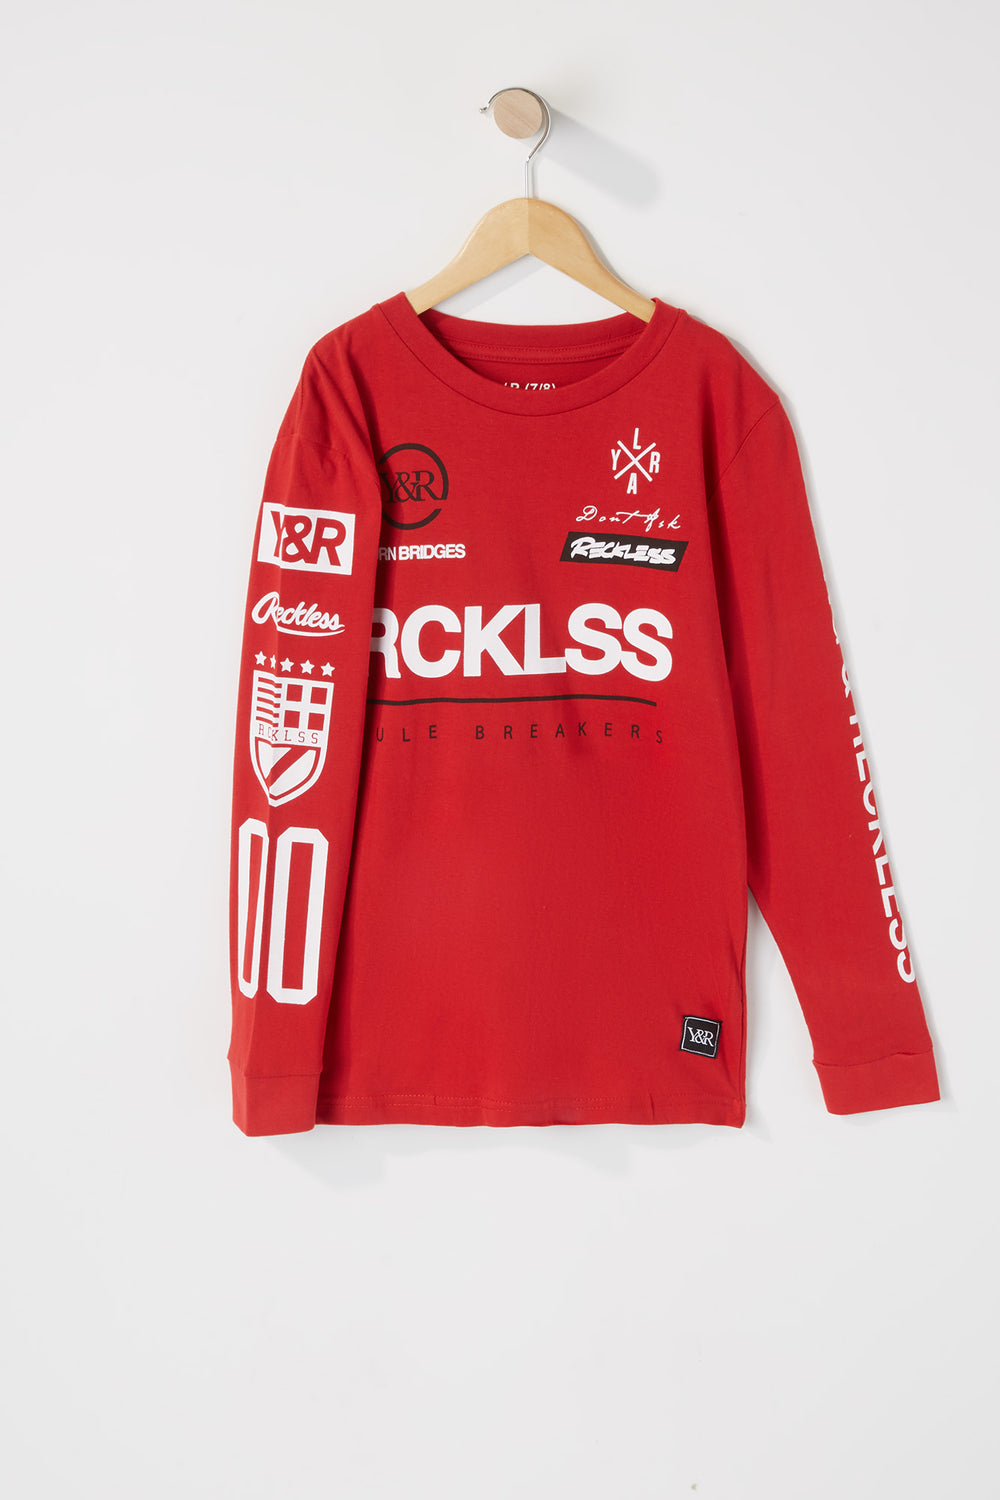 Young & Reckless Boys Rule Breakers Graphic Long Sleeve Shirt Red